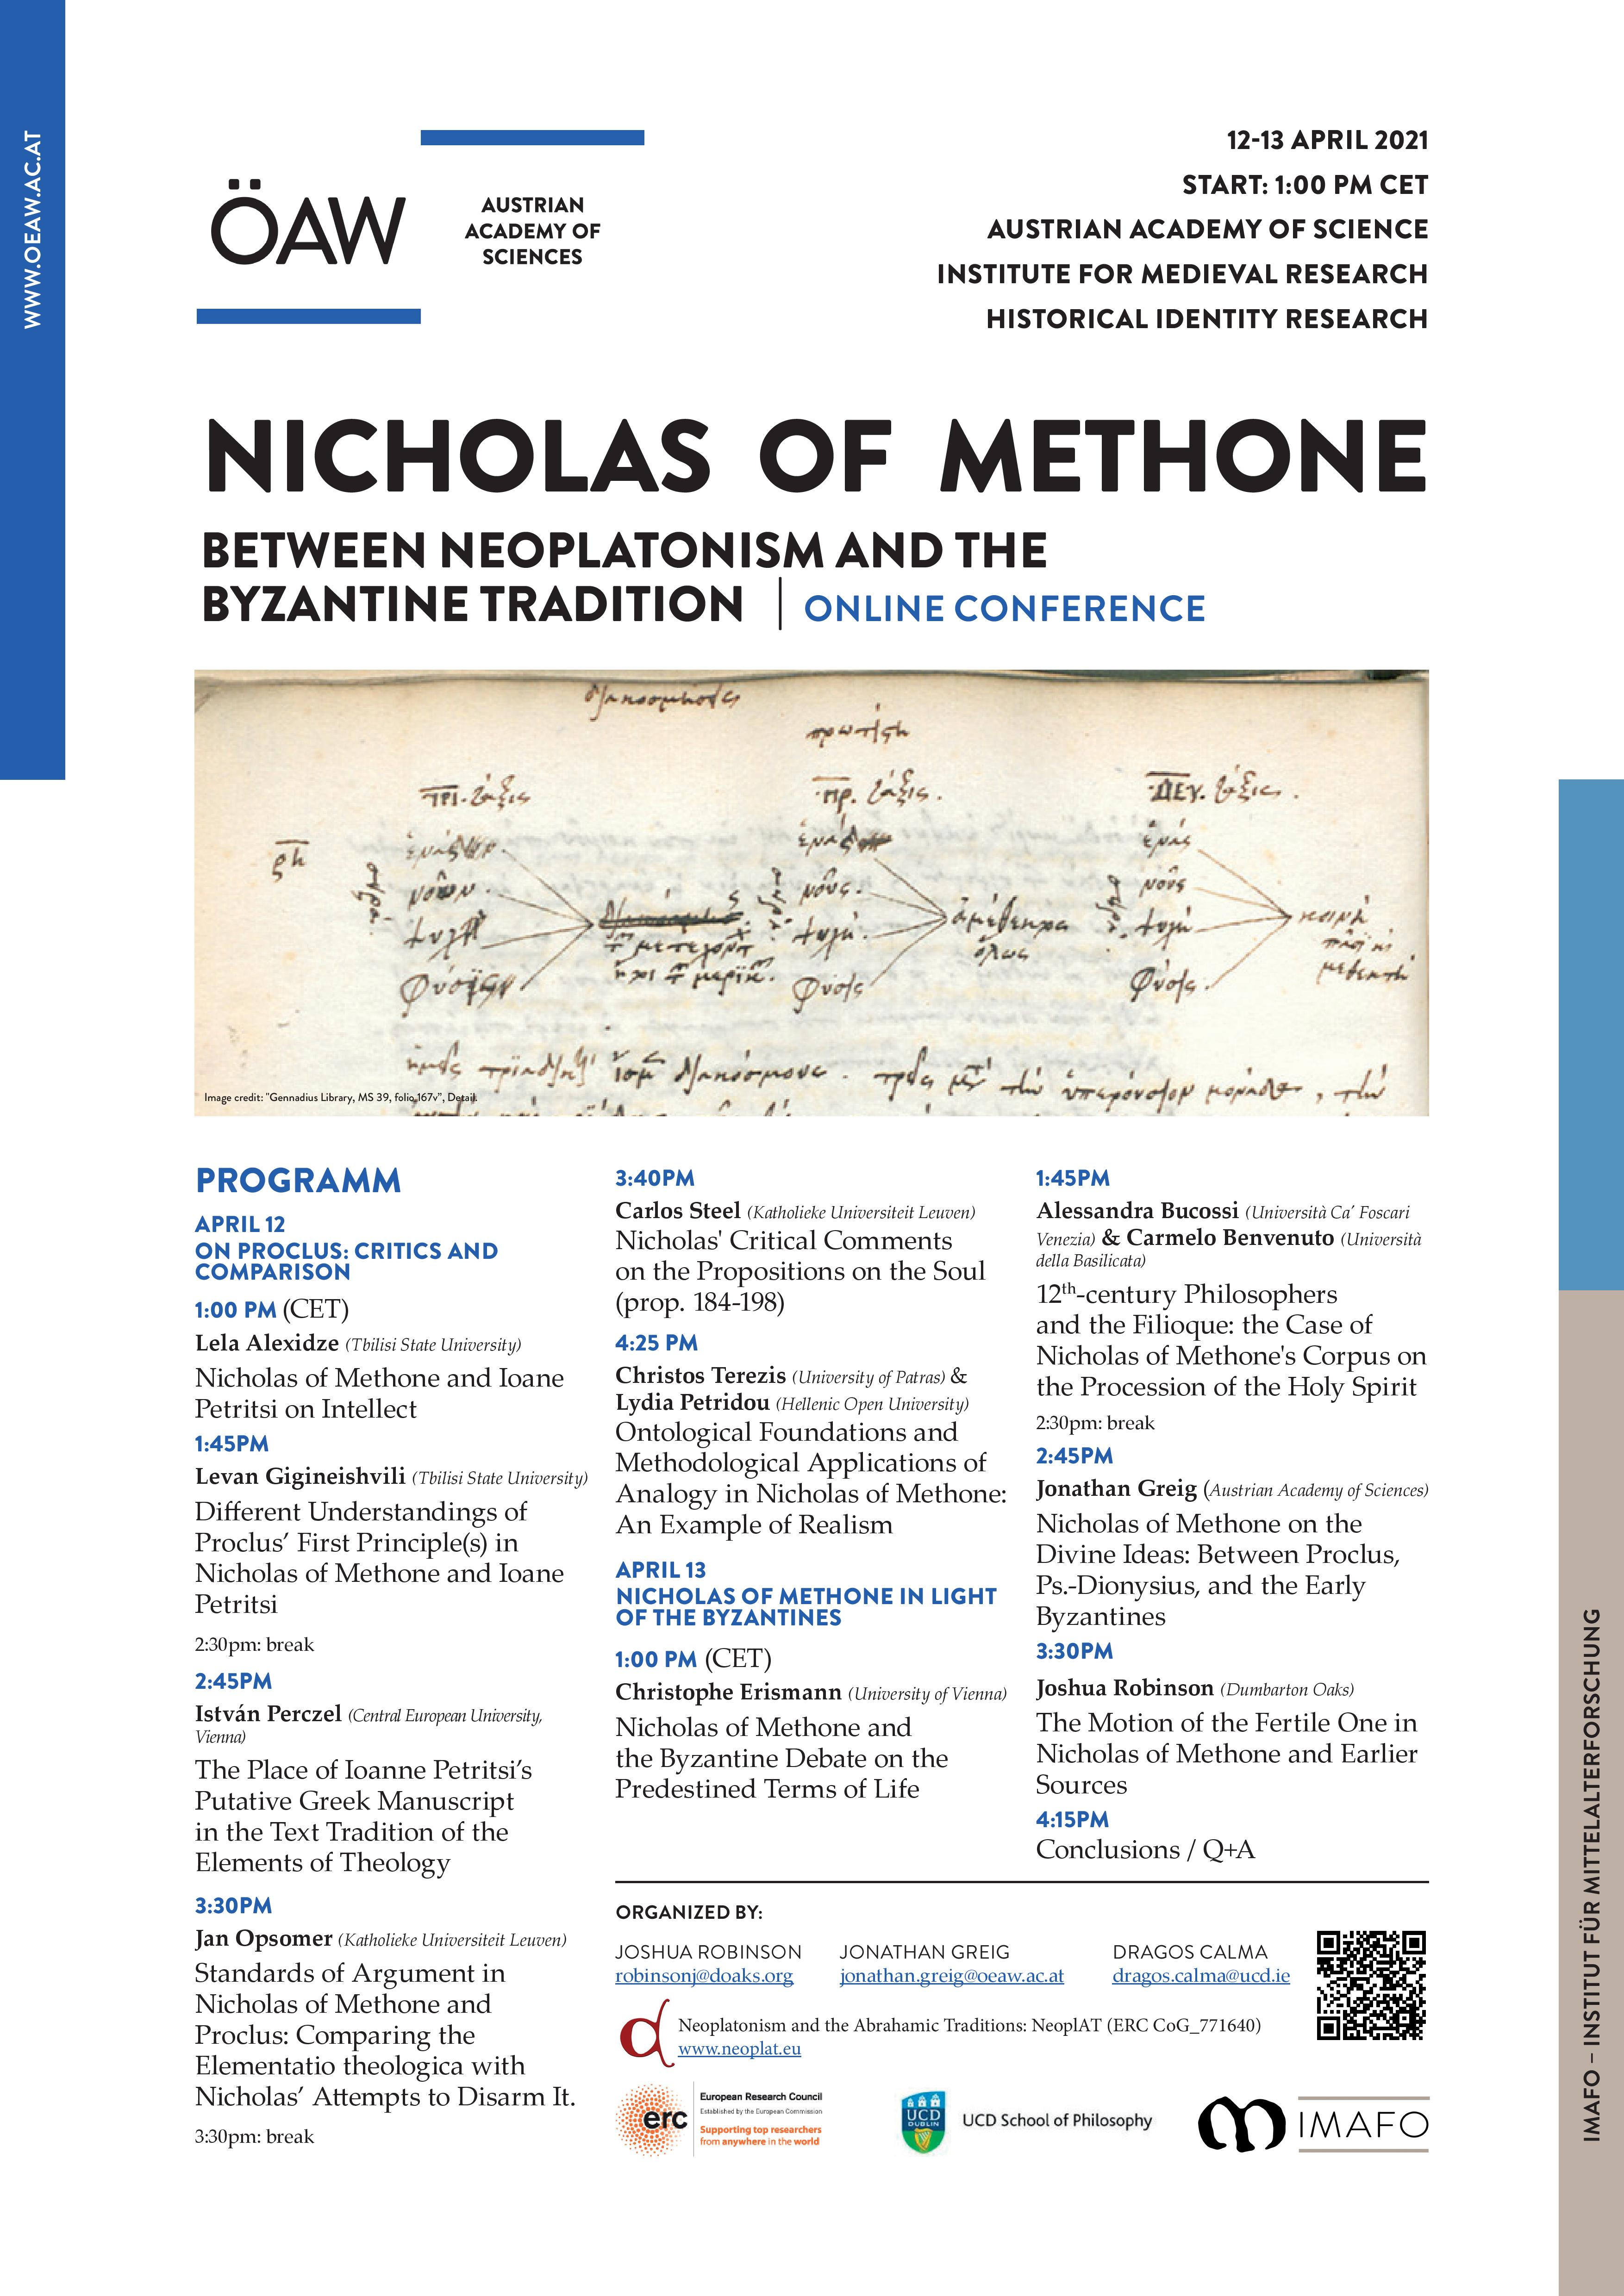 Conference: Nicholas of Methone: Between Neoplatonism and the Byzantine Tradition